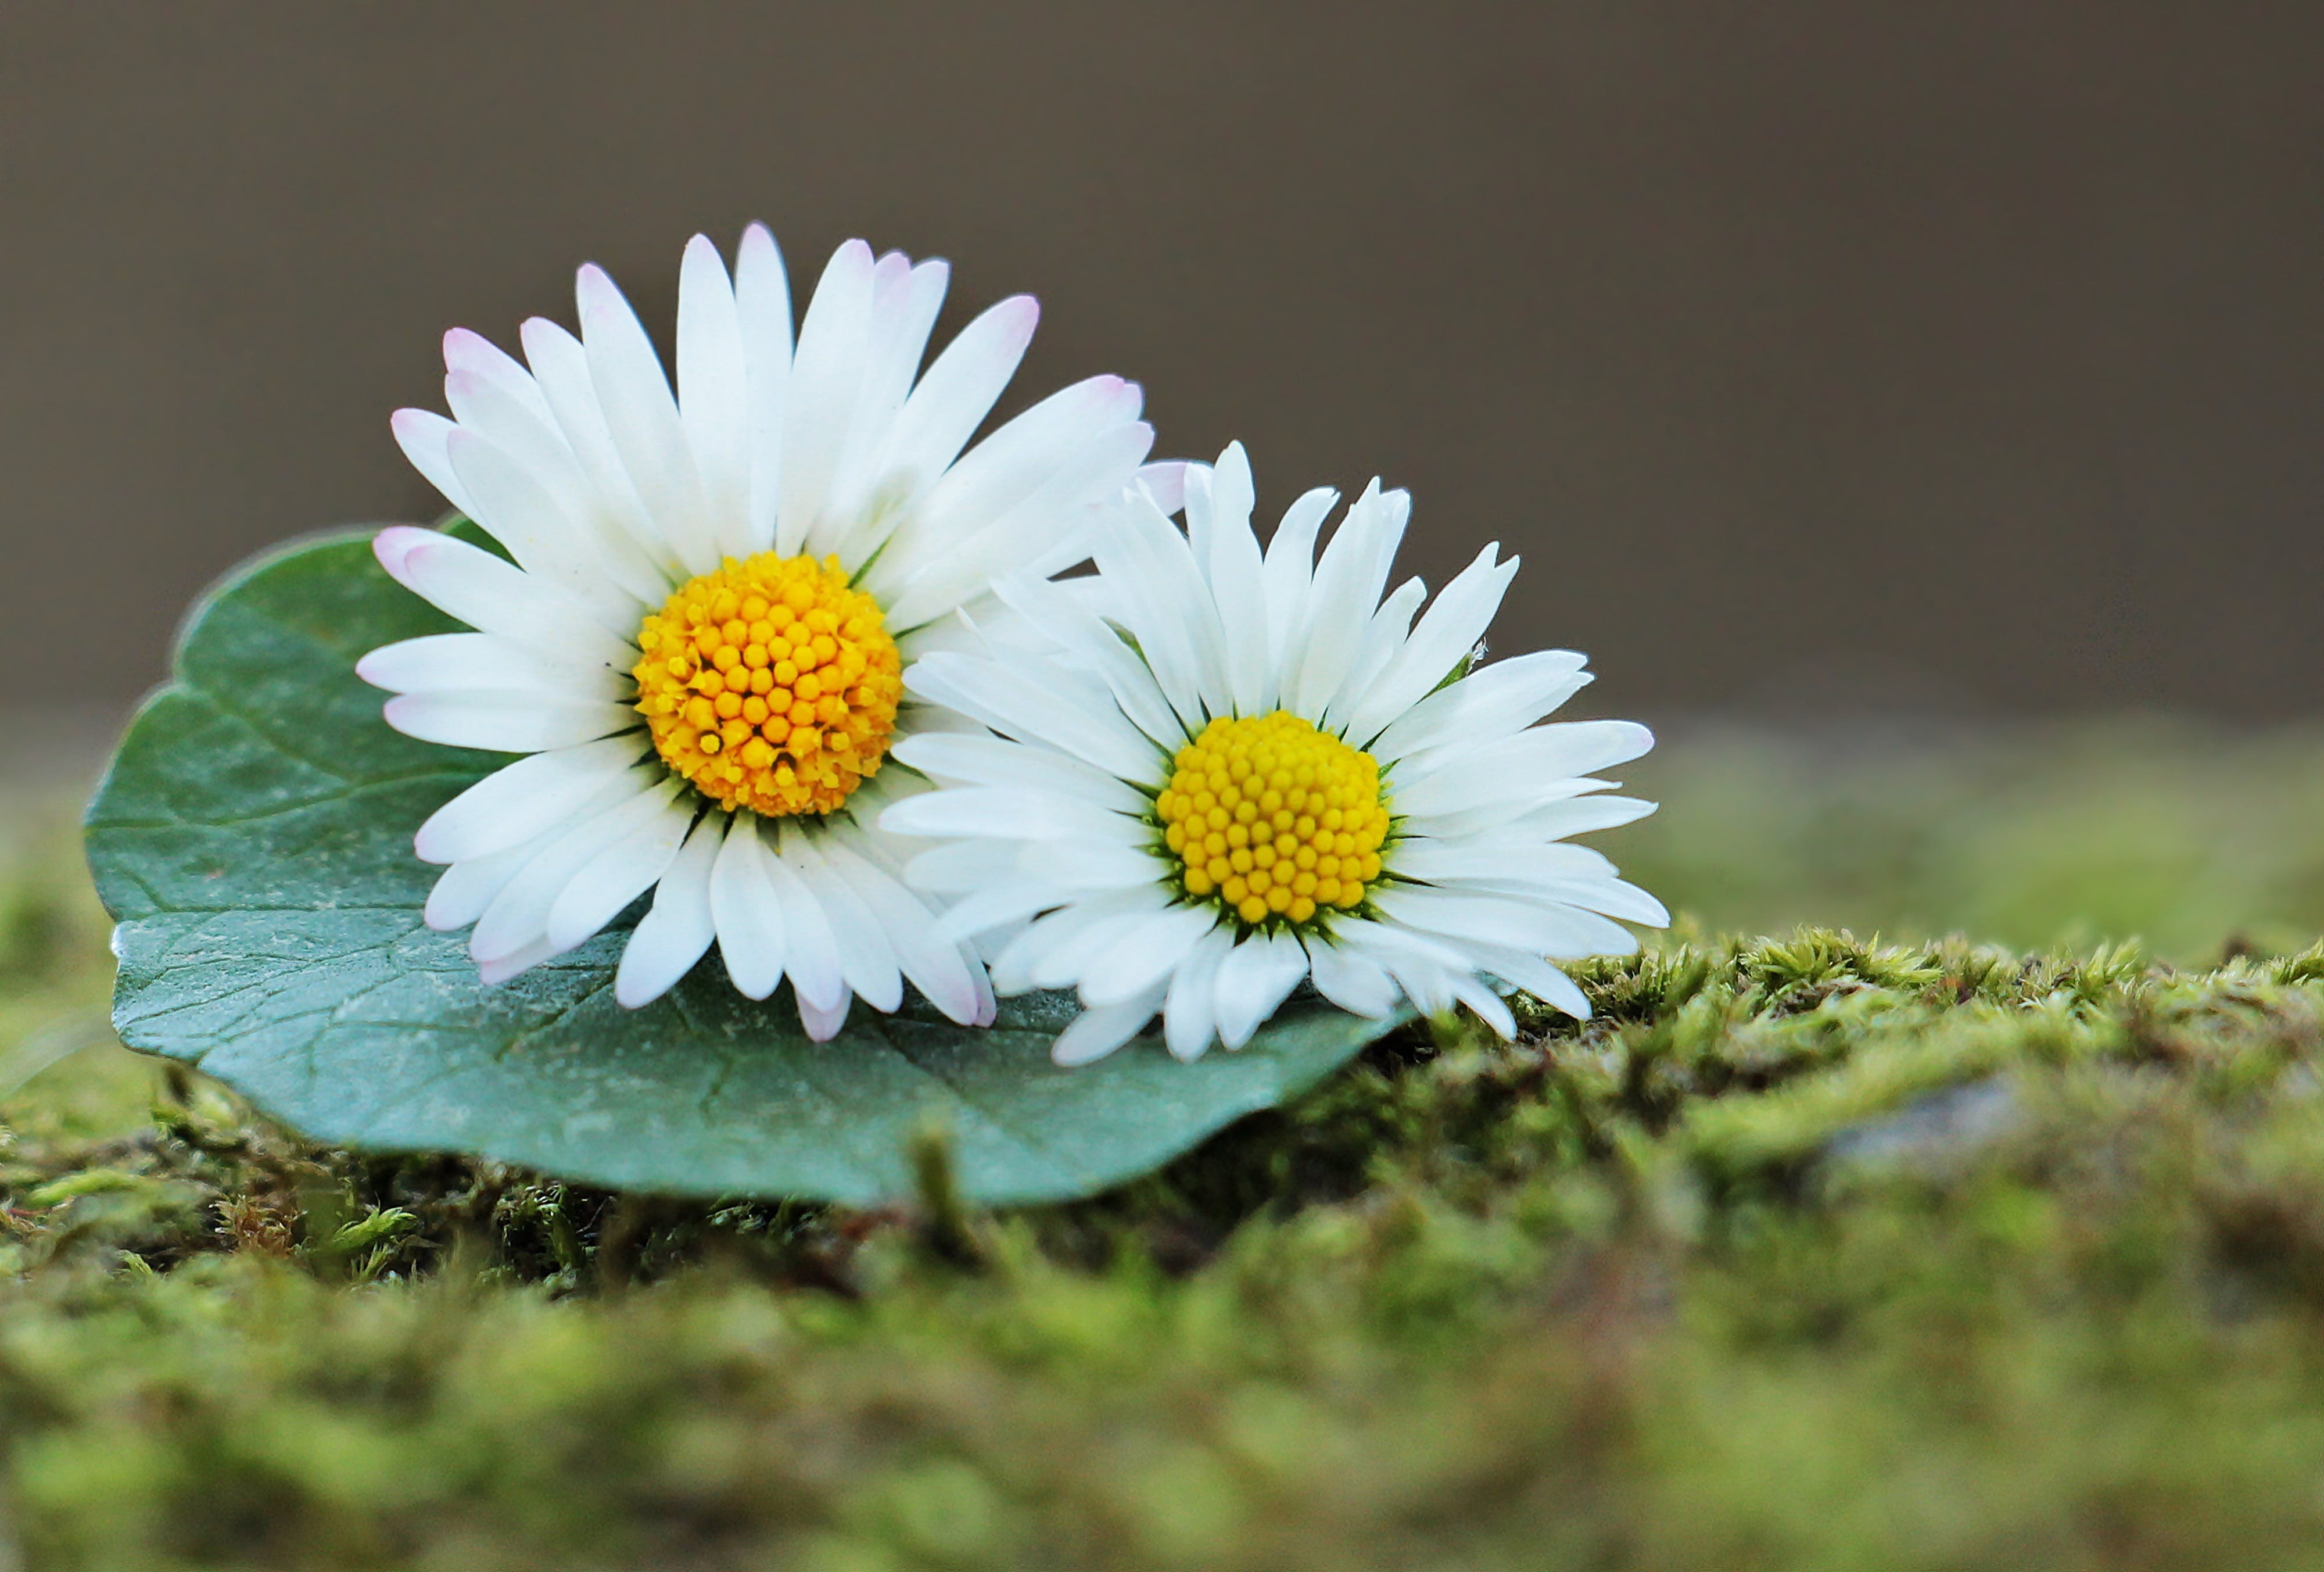 Free stock photo of bloom, daisies on a sheet of, daisy, floral greeting